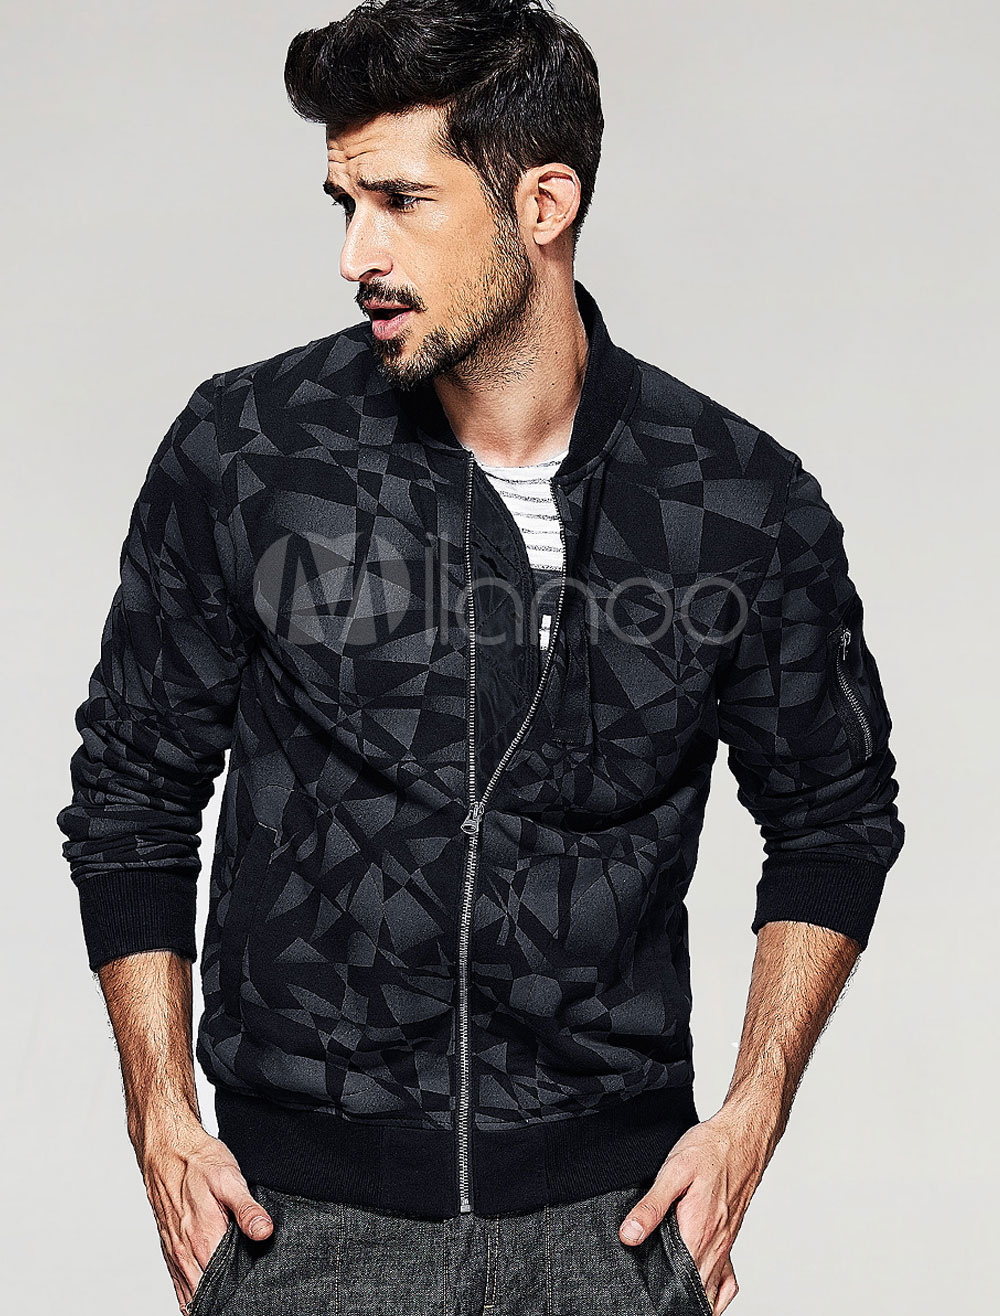 Buy Men's Black Jacket Cotton Geometric Long Sleeve Stand Collar Zipper Coat for $49.49 in Milanoo store